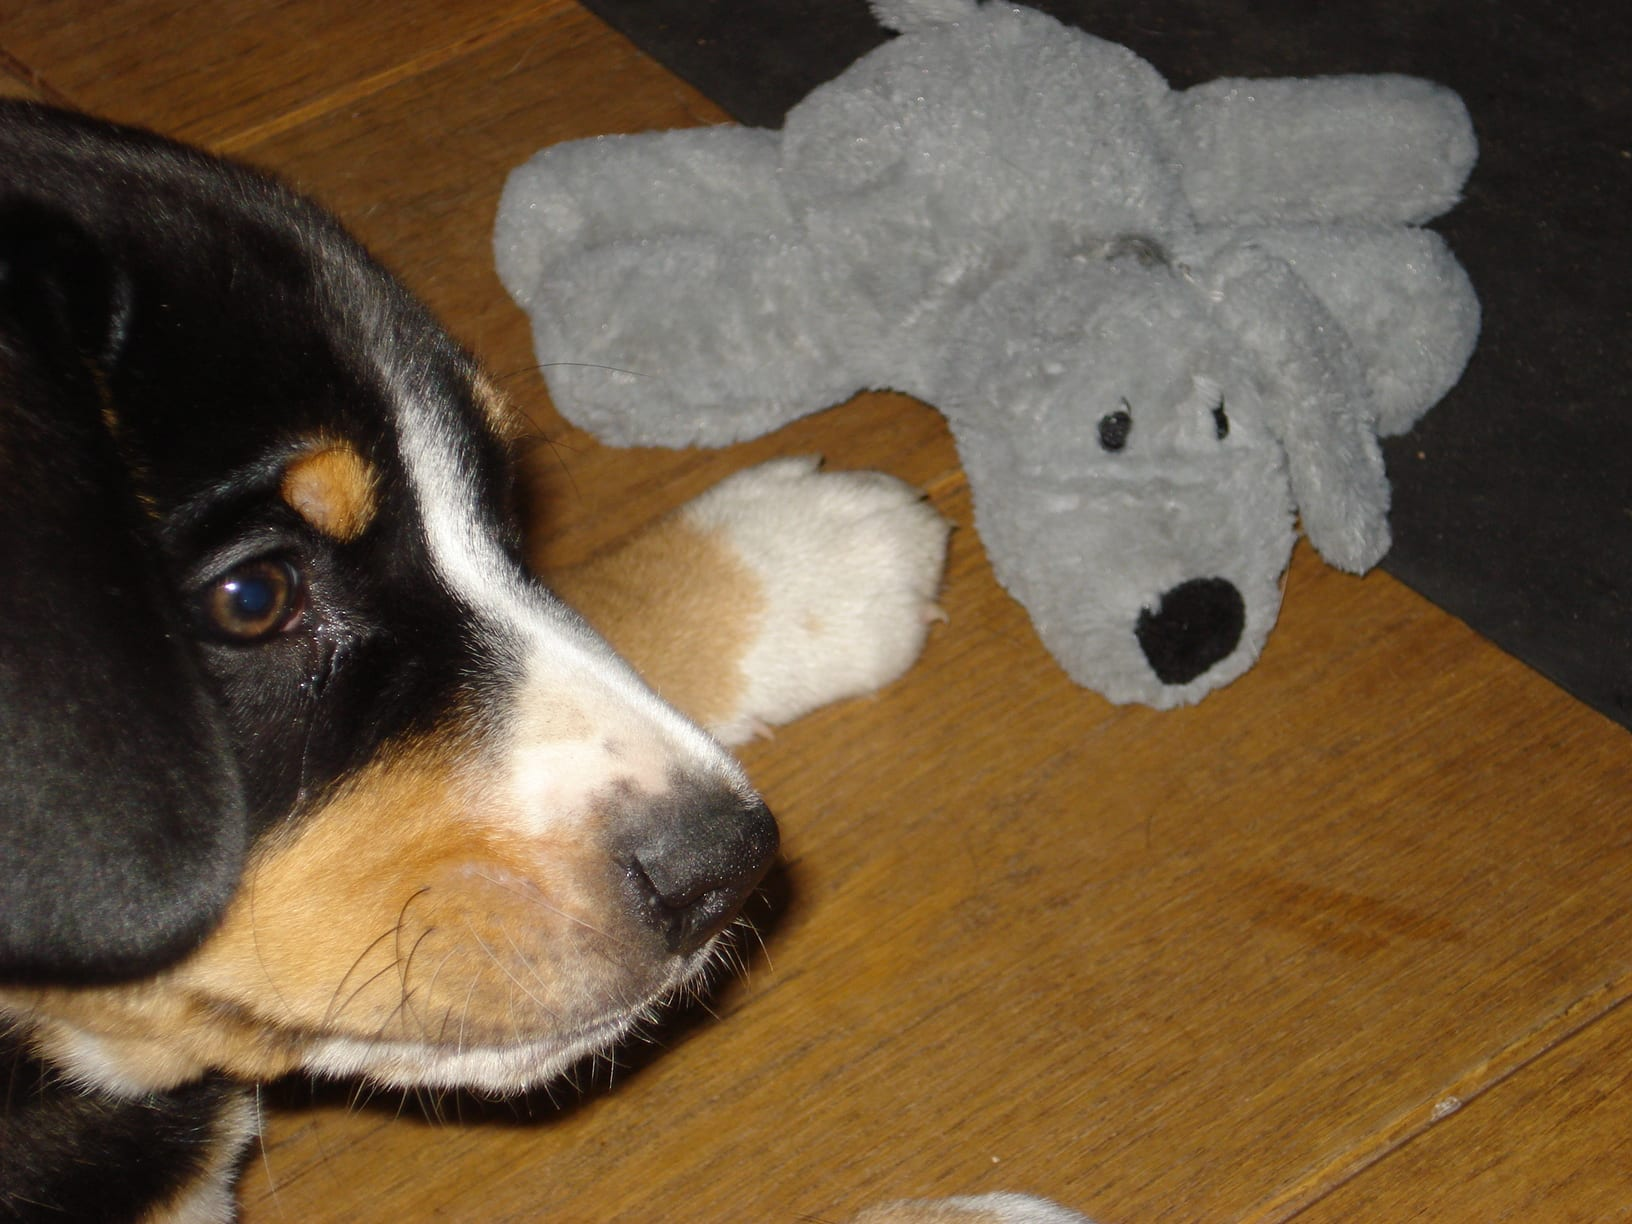 Ari and his teddy